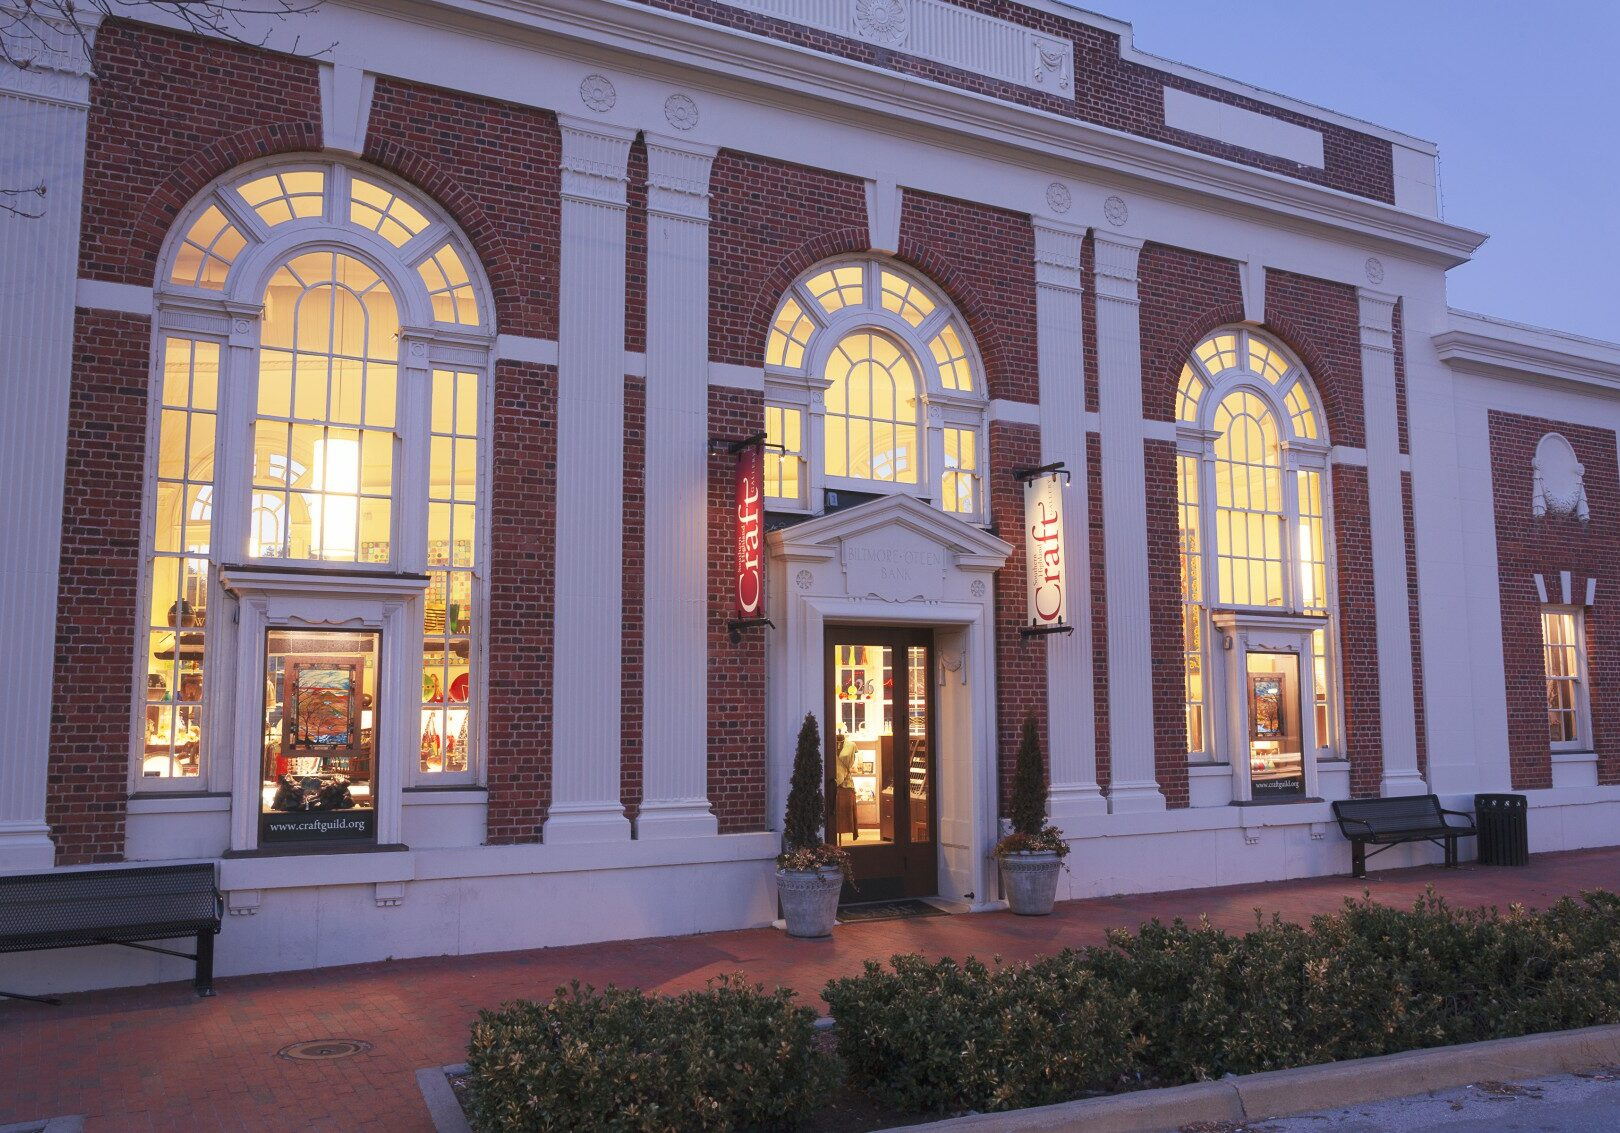 artist gallery, nc craft, appalachian craft, biltmore village gallery, nc pottery, asheville glass blowing, asheville fiber, asheville metal art, nc gallery, asheville crafts